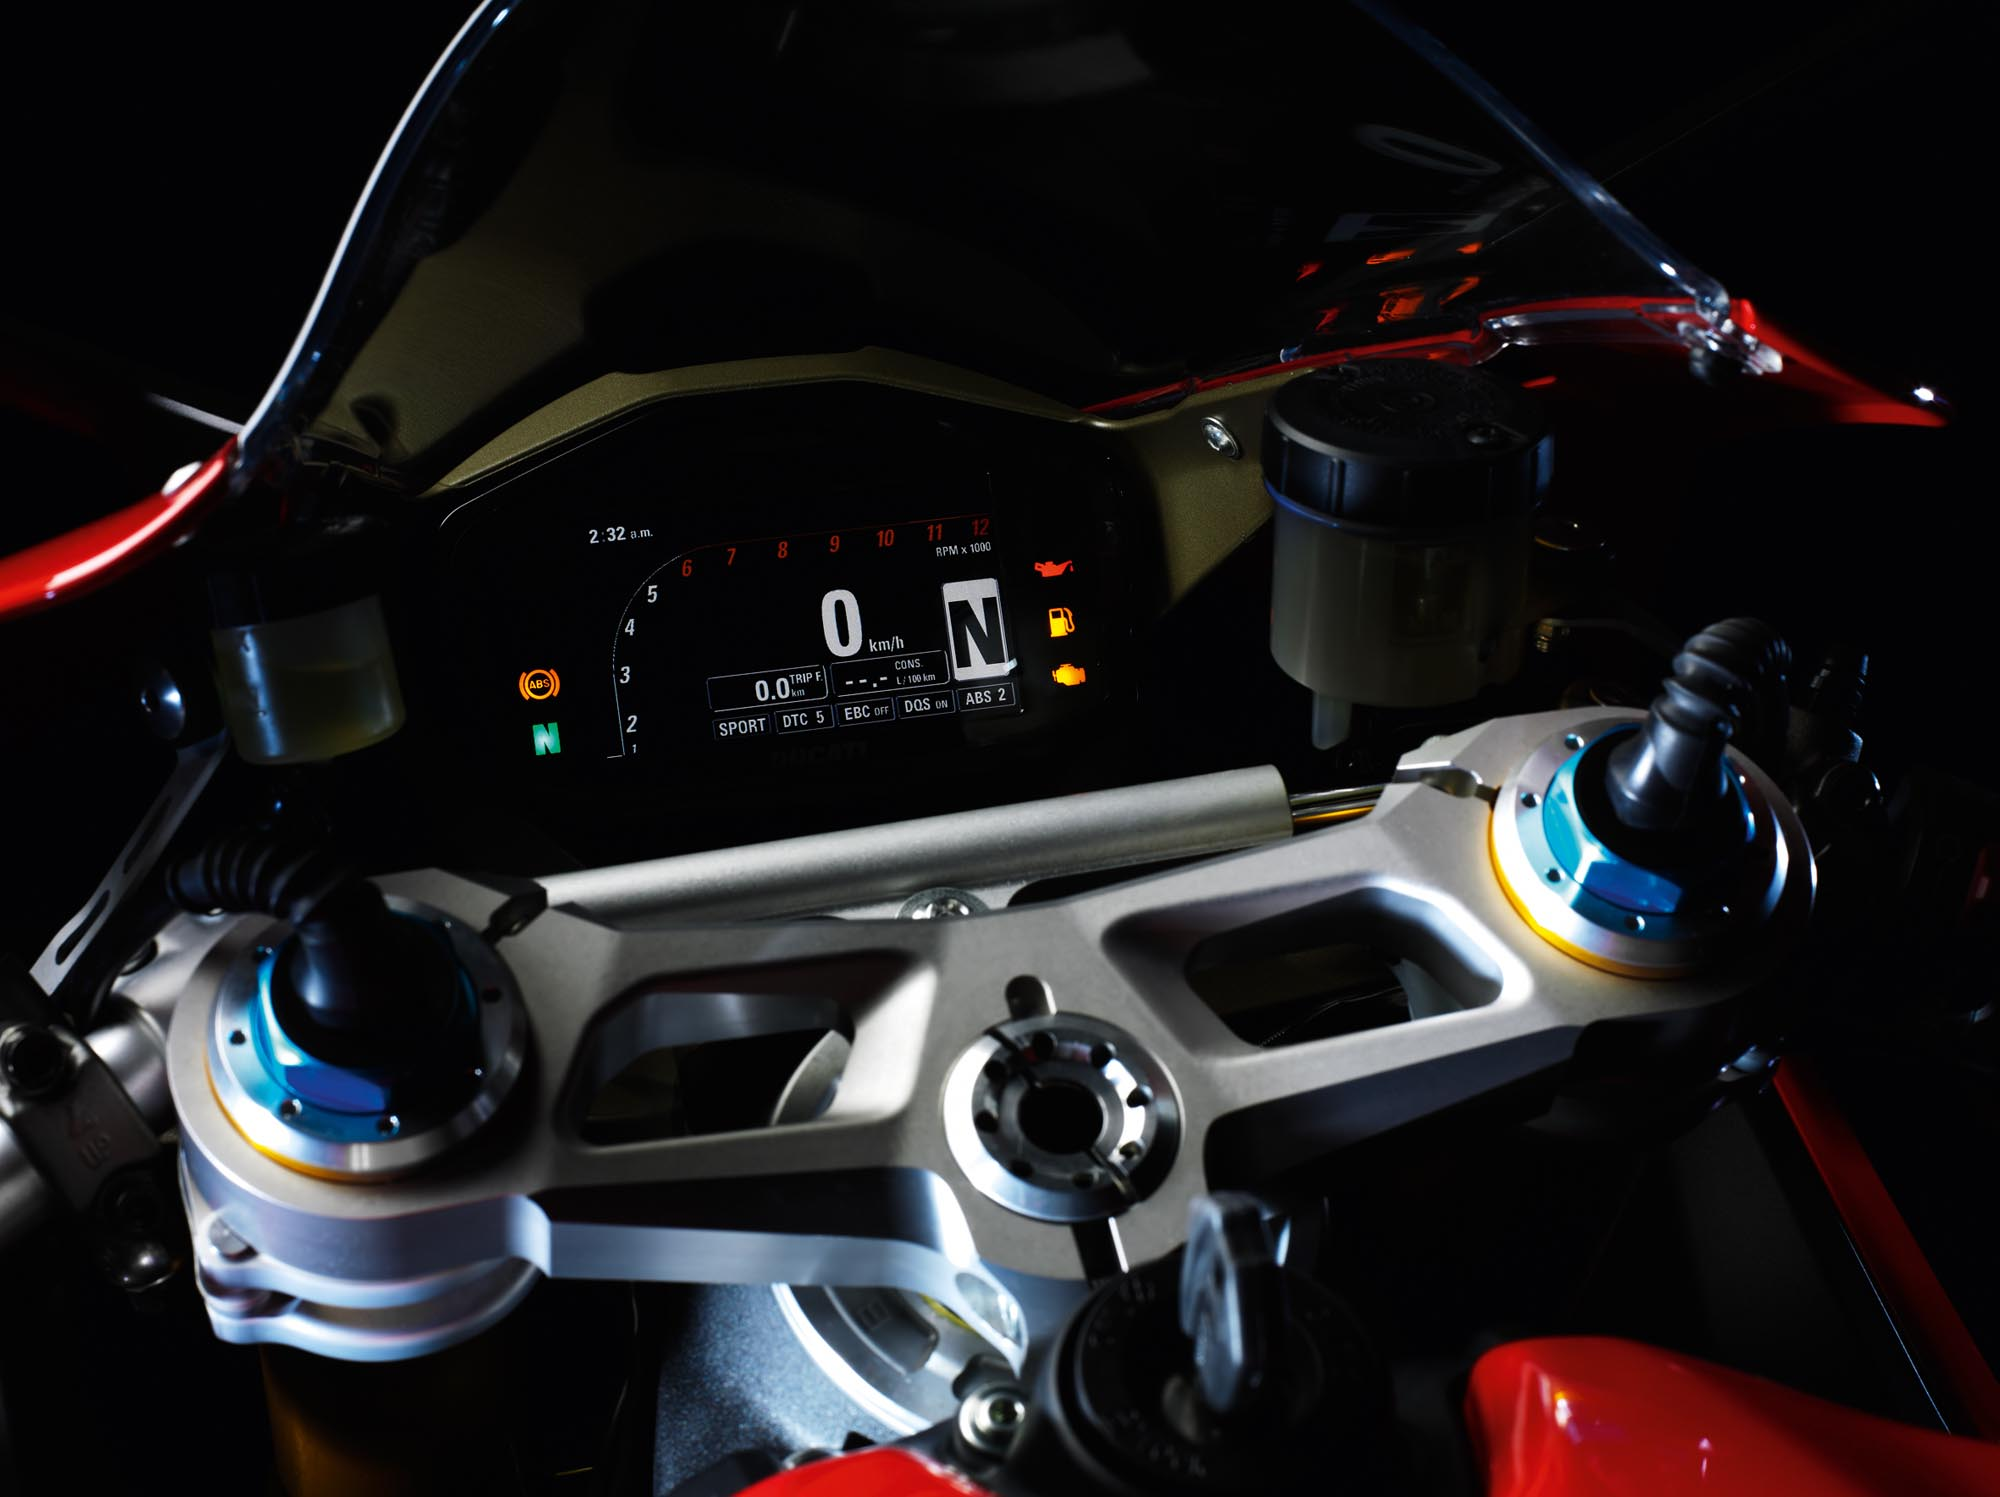 http://www.asphaltandrubber.com/wp-content/gallery/2012-ducati-1199-panigale/2012-ducati-1199-panigale-30.jpg